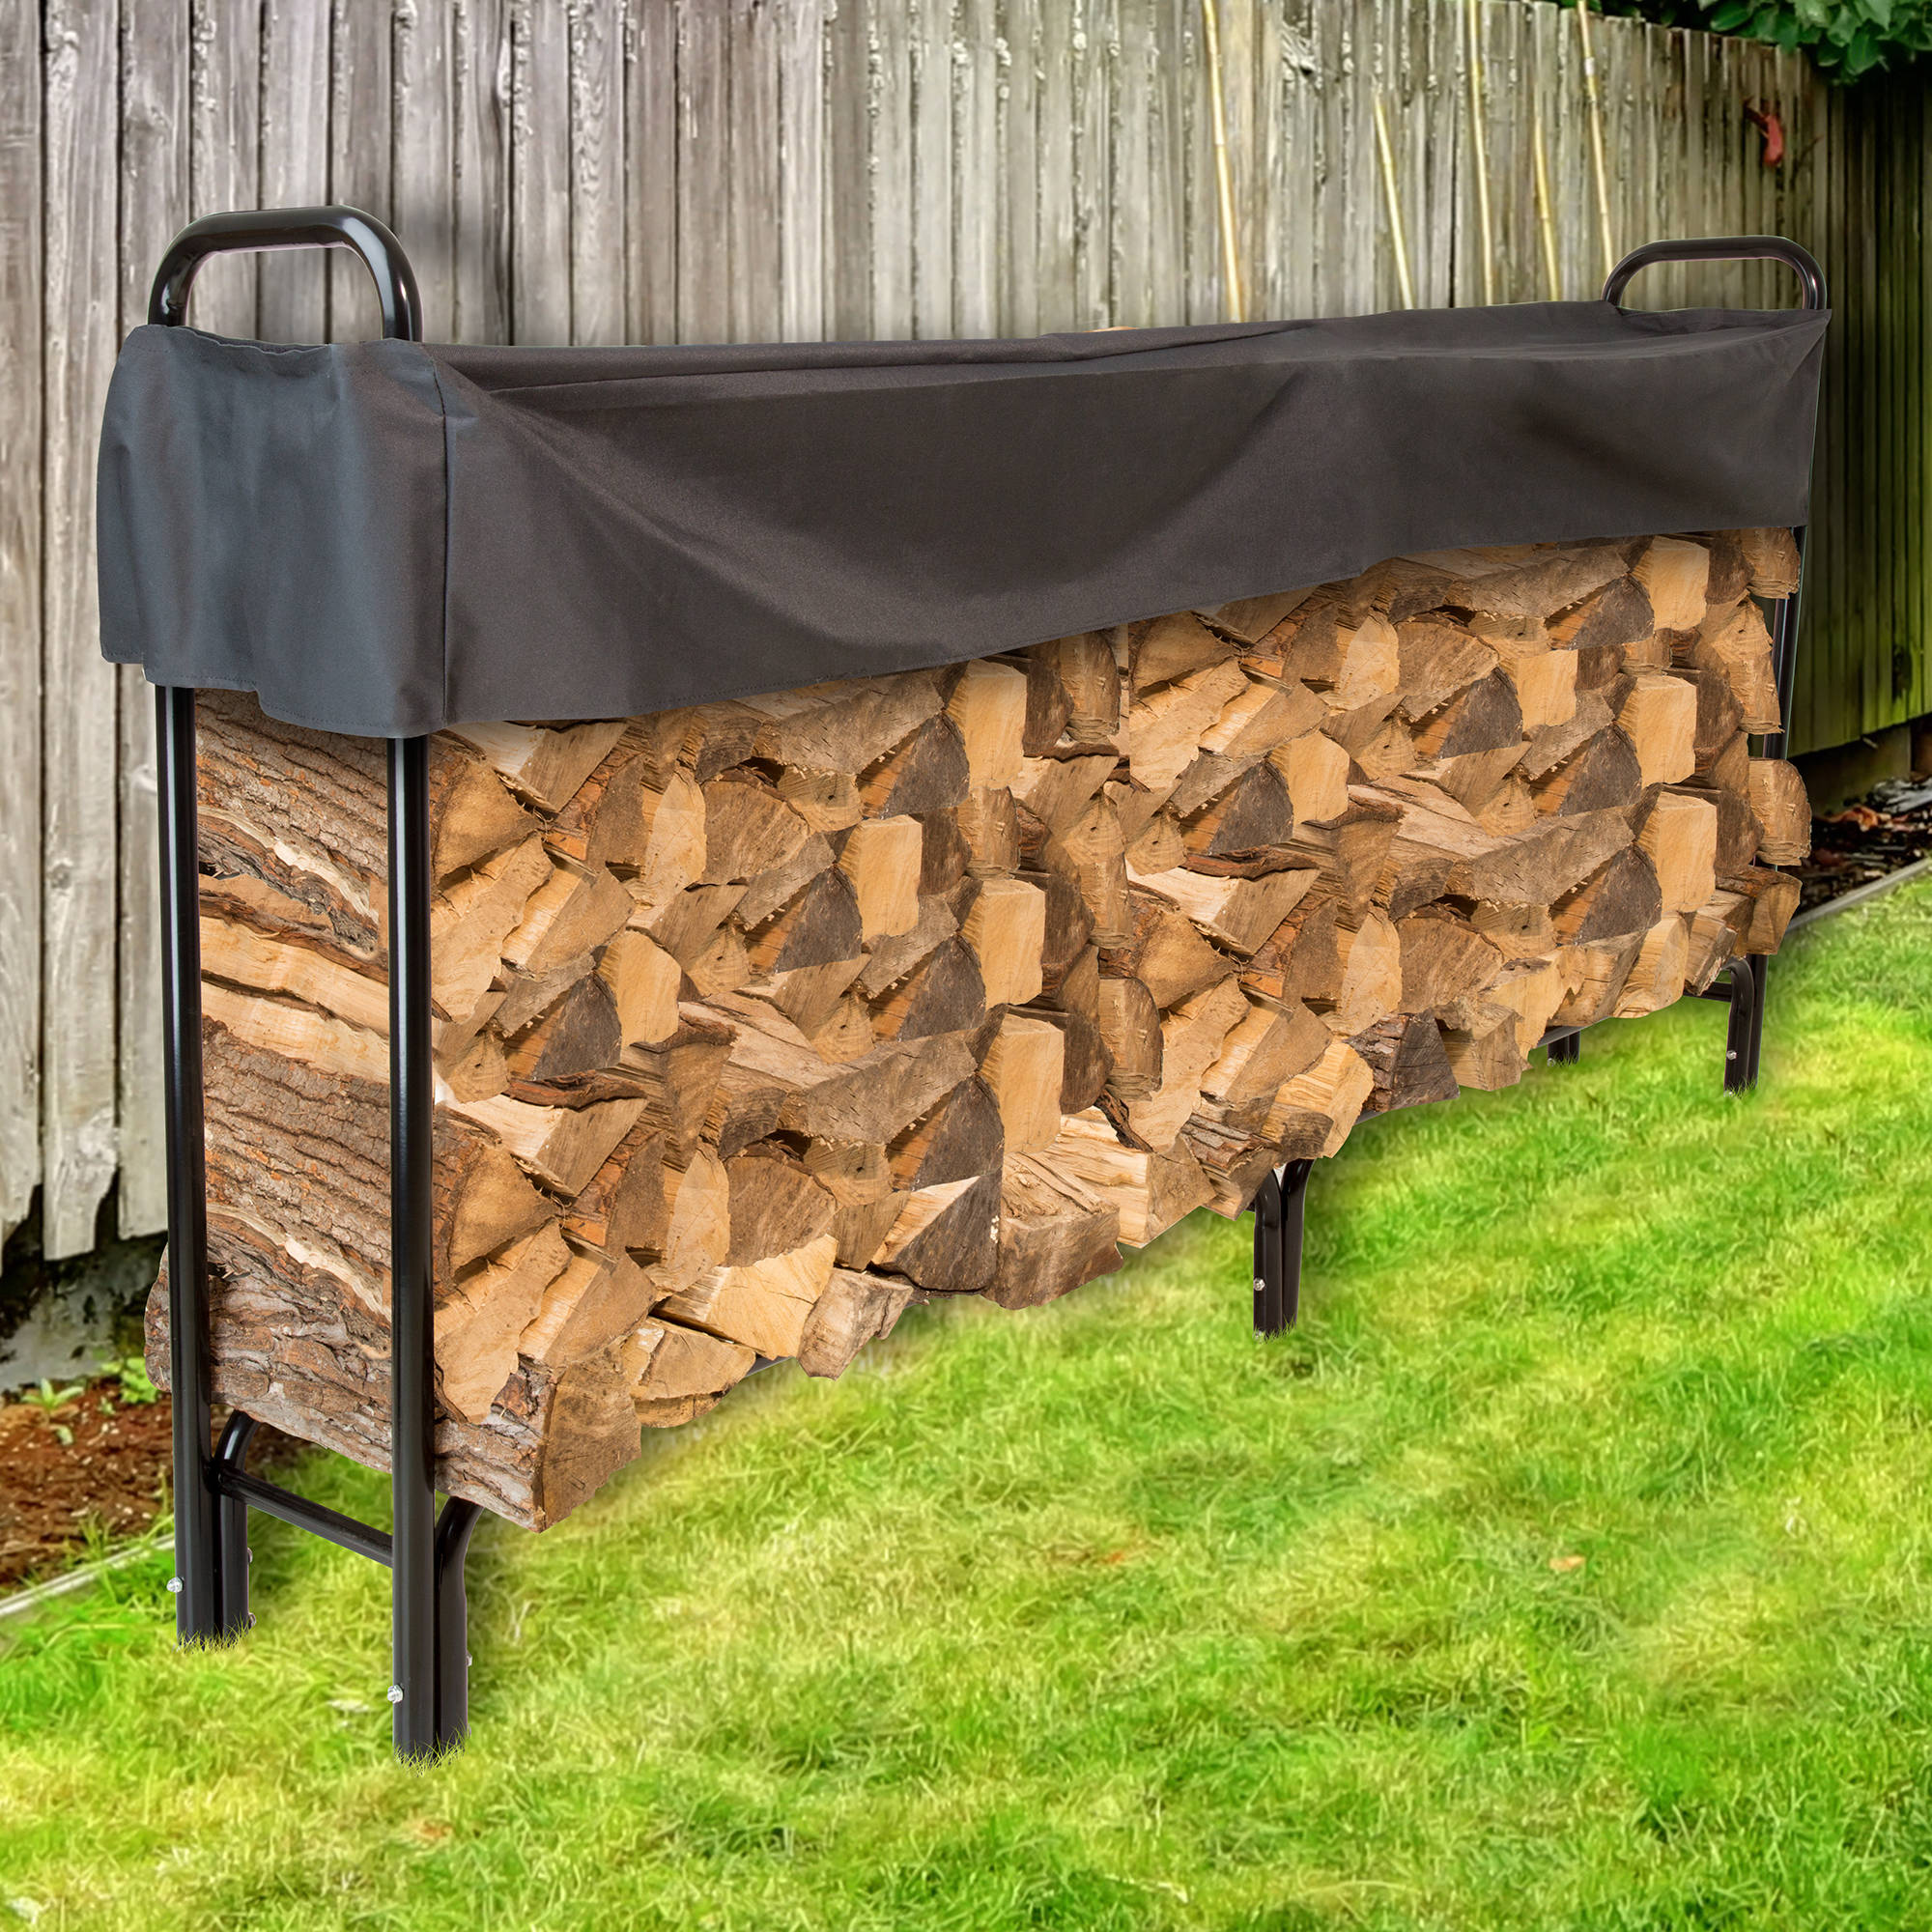 Pure Garden 8' Firewood Log Rack with Cover